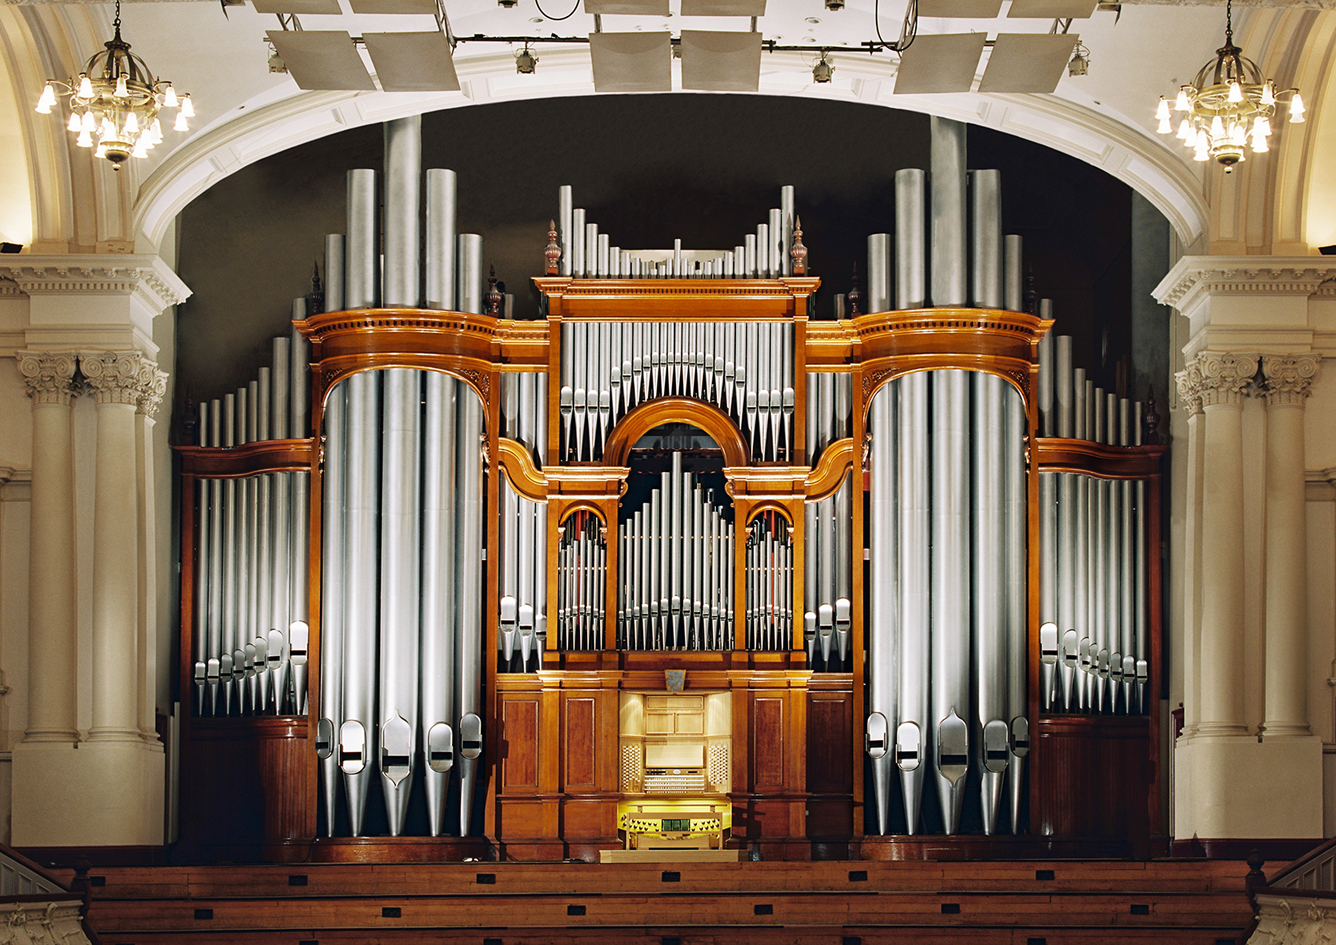 The Auckland Town Hall Organ